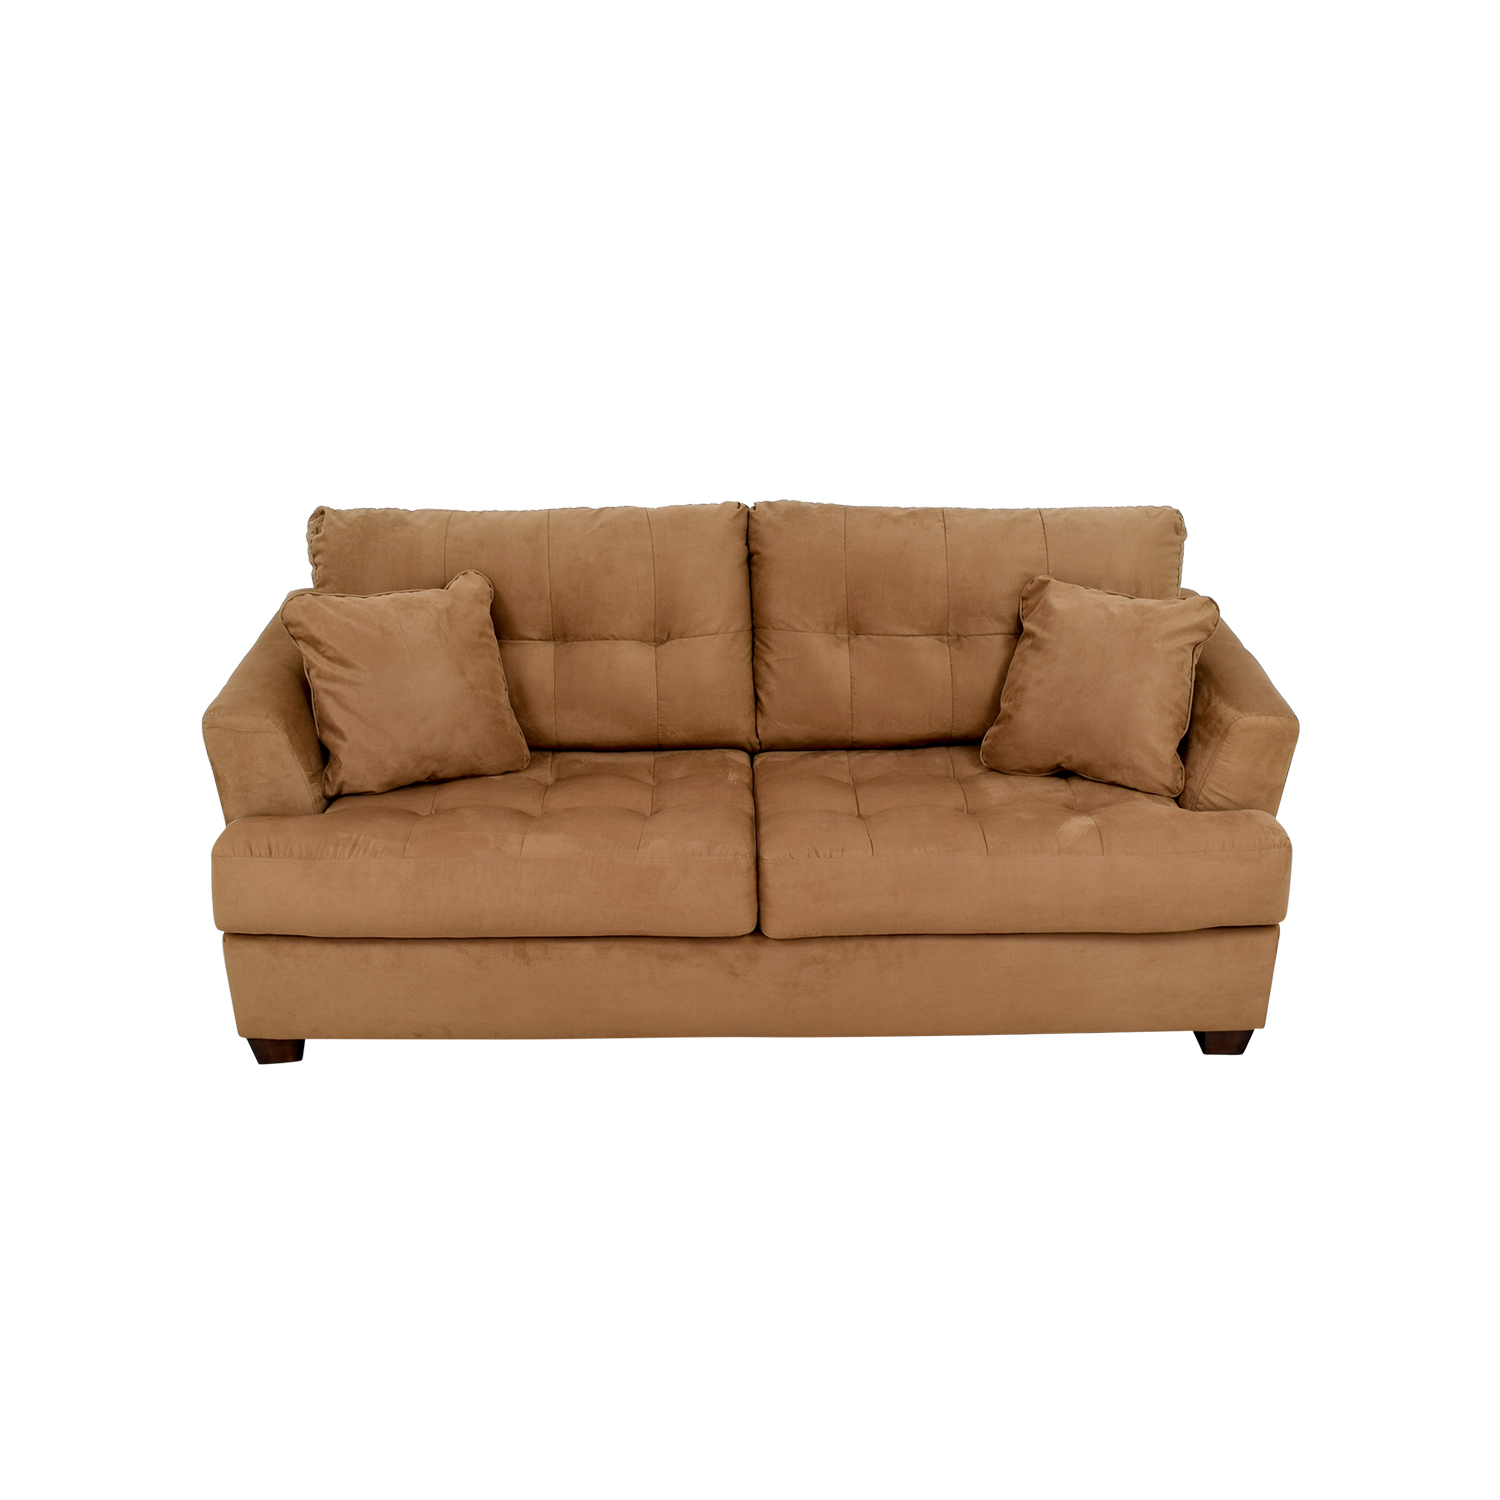 Tan Microfiber Sofa Tan Microfiber Contemporary Sectional Sofa And Ottoman Td7813b Kf 06 Thesofa